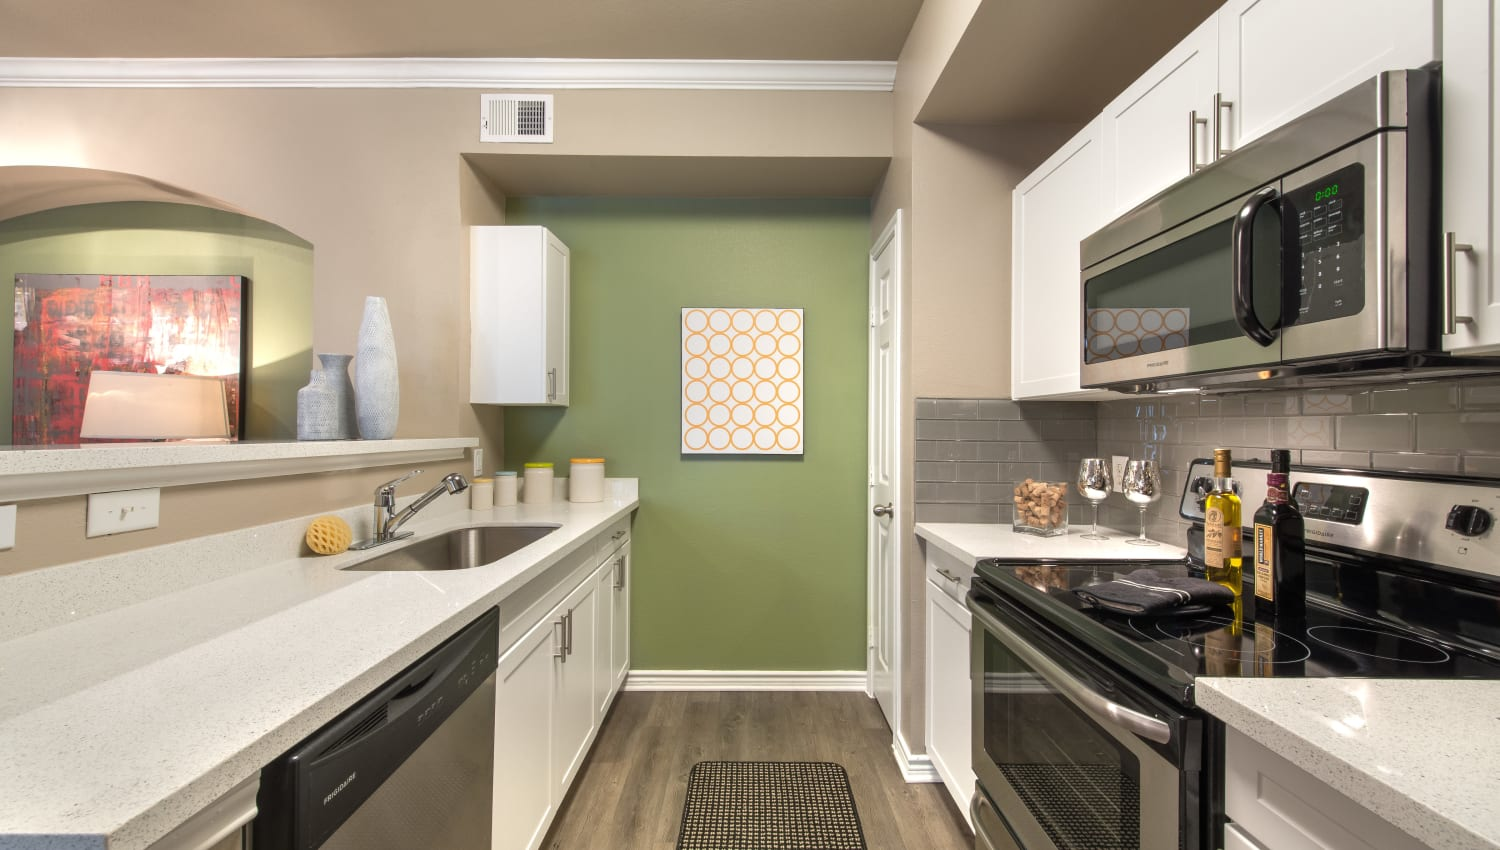 Kitchen featuring modern amenities and ample countertop space at Olympus 7th Street Station in Fort Worth, Texas